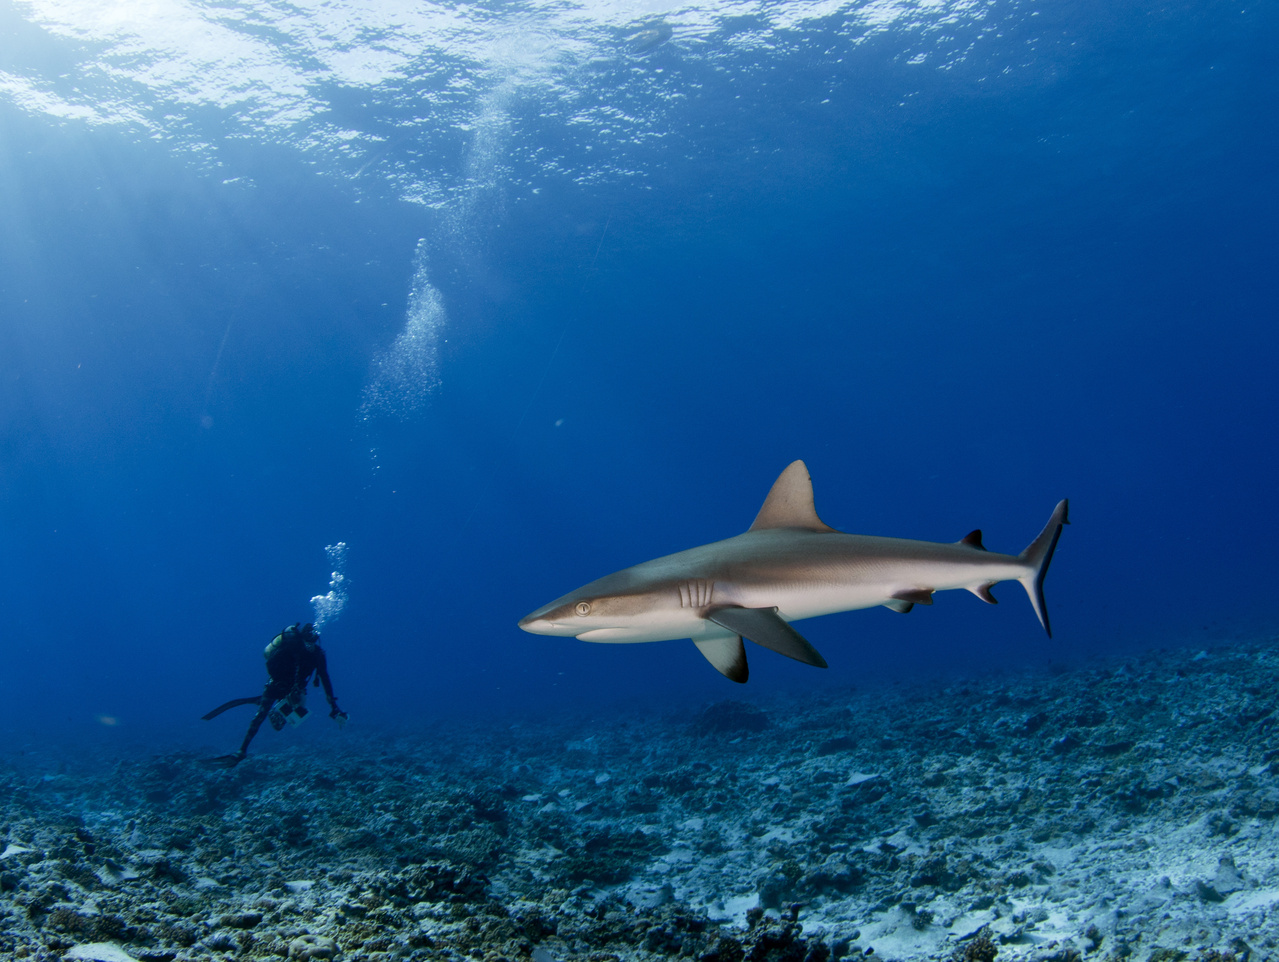 Chief Scientist, Kaylyn McCoy, counts fishes large and small during her census of fish biomass and biodiversity. This curious gray reef shark, <i>Carcharhinus amblrhynchos</i>, comes in for a closer inspection of this newcomer to his waters. (Photo: NOAA Fisheries/Jeff Milisen)